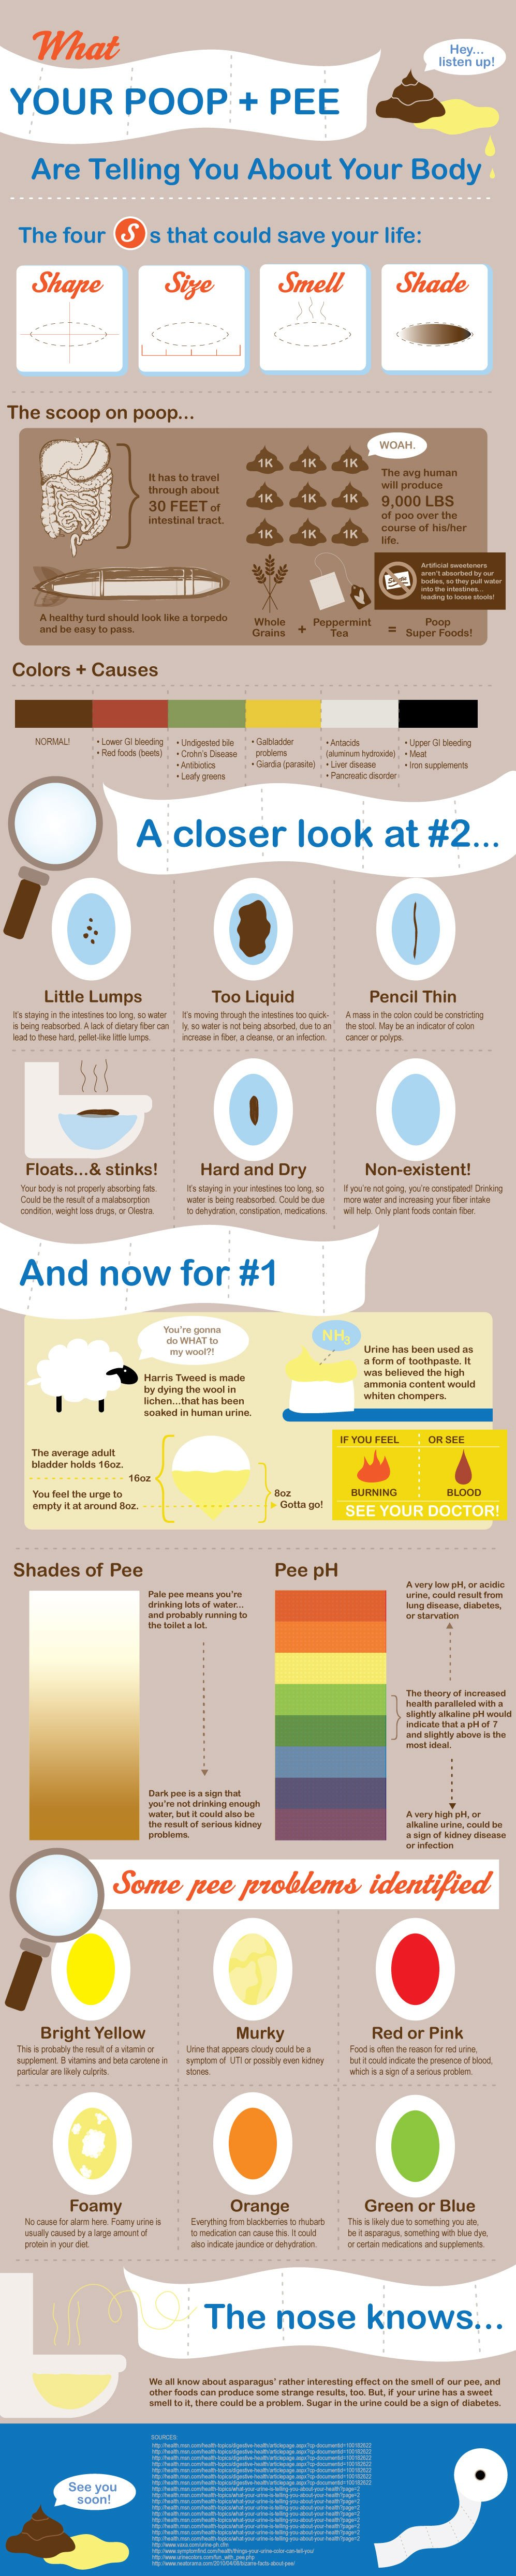 18What Your Poop Is Telling You